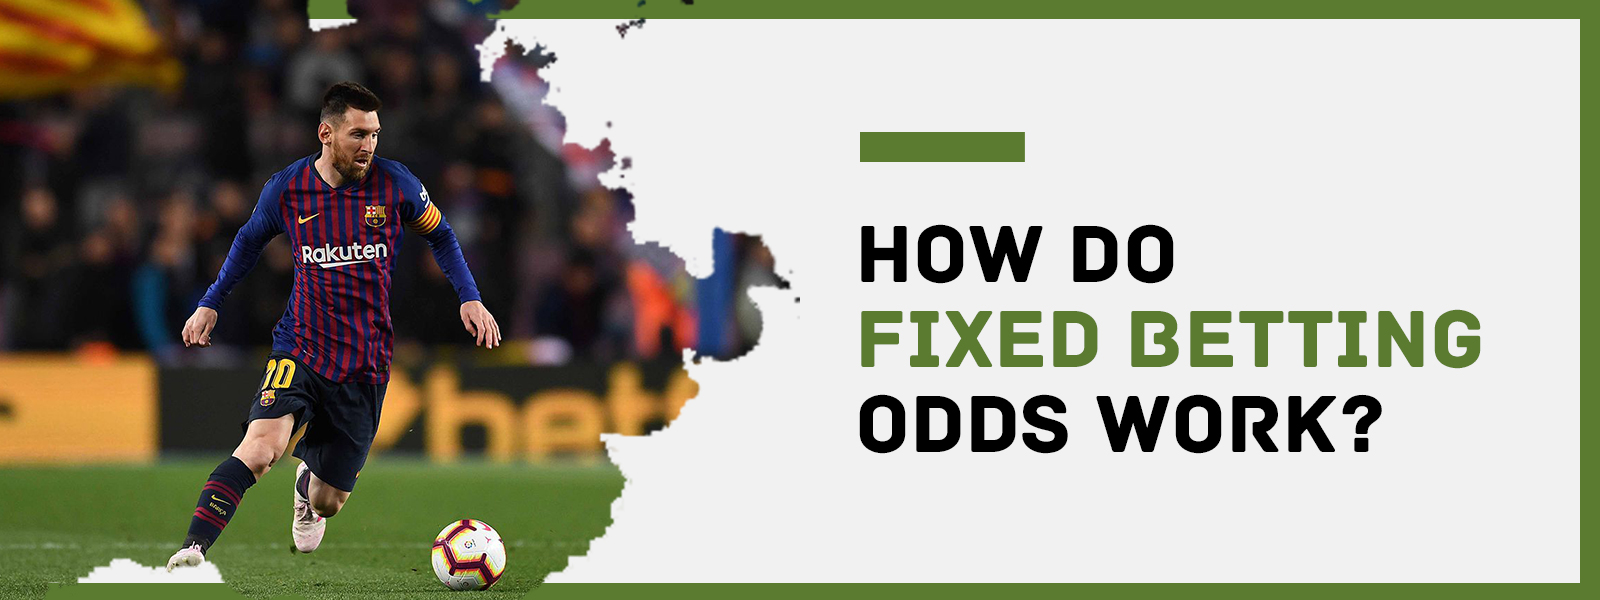 How Do Fixed Betting Odds Work